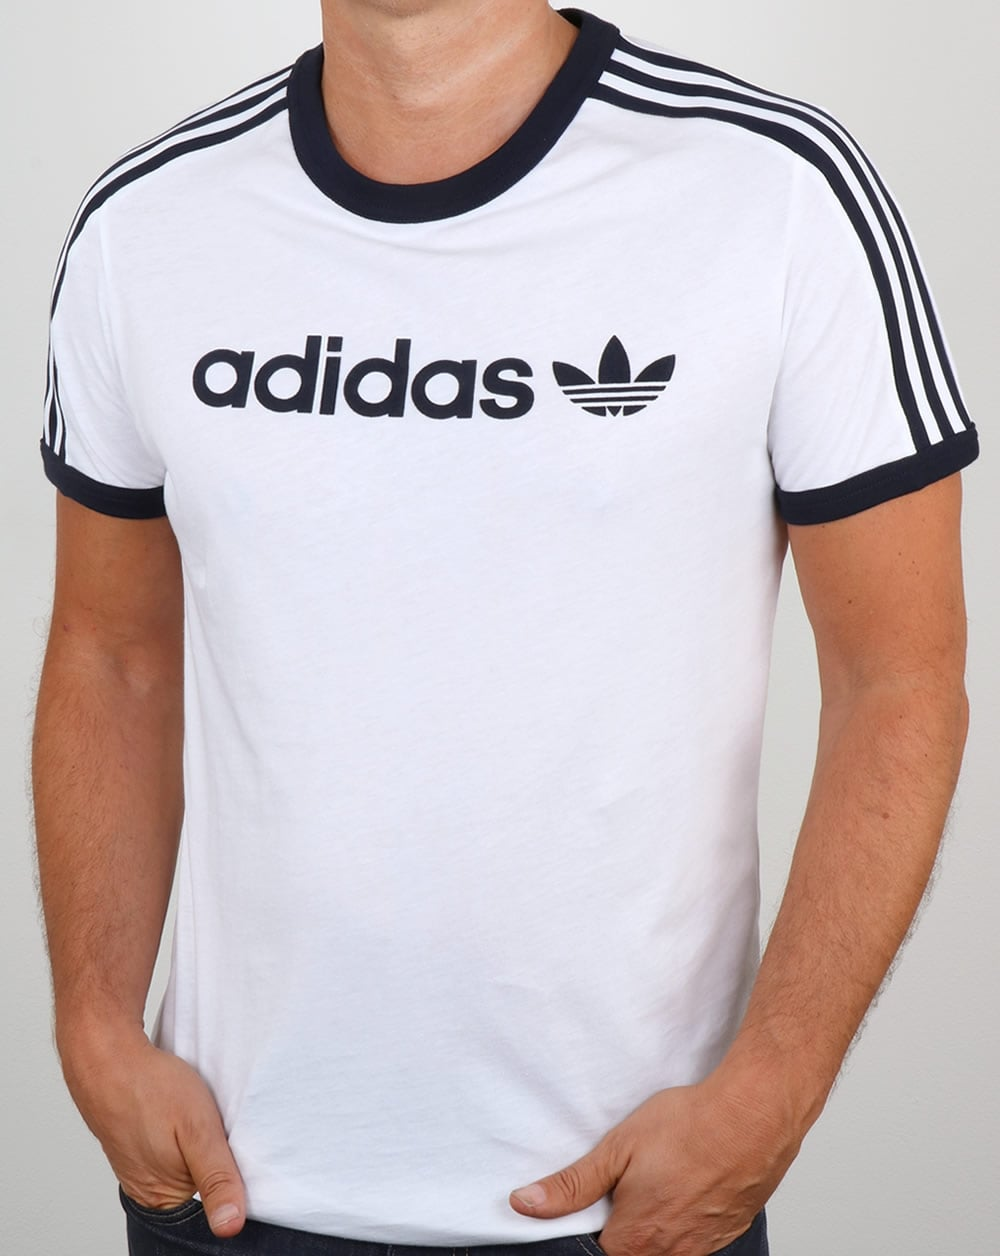 adidas originals linear t shirt white ringer 3 stripes tee ForAdidas Ringer T Shirt